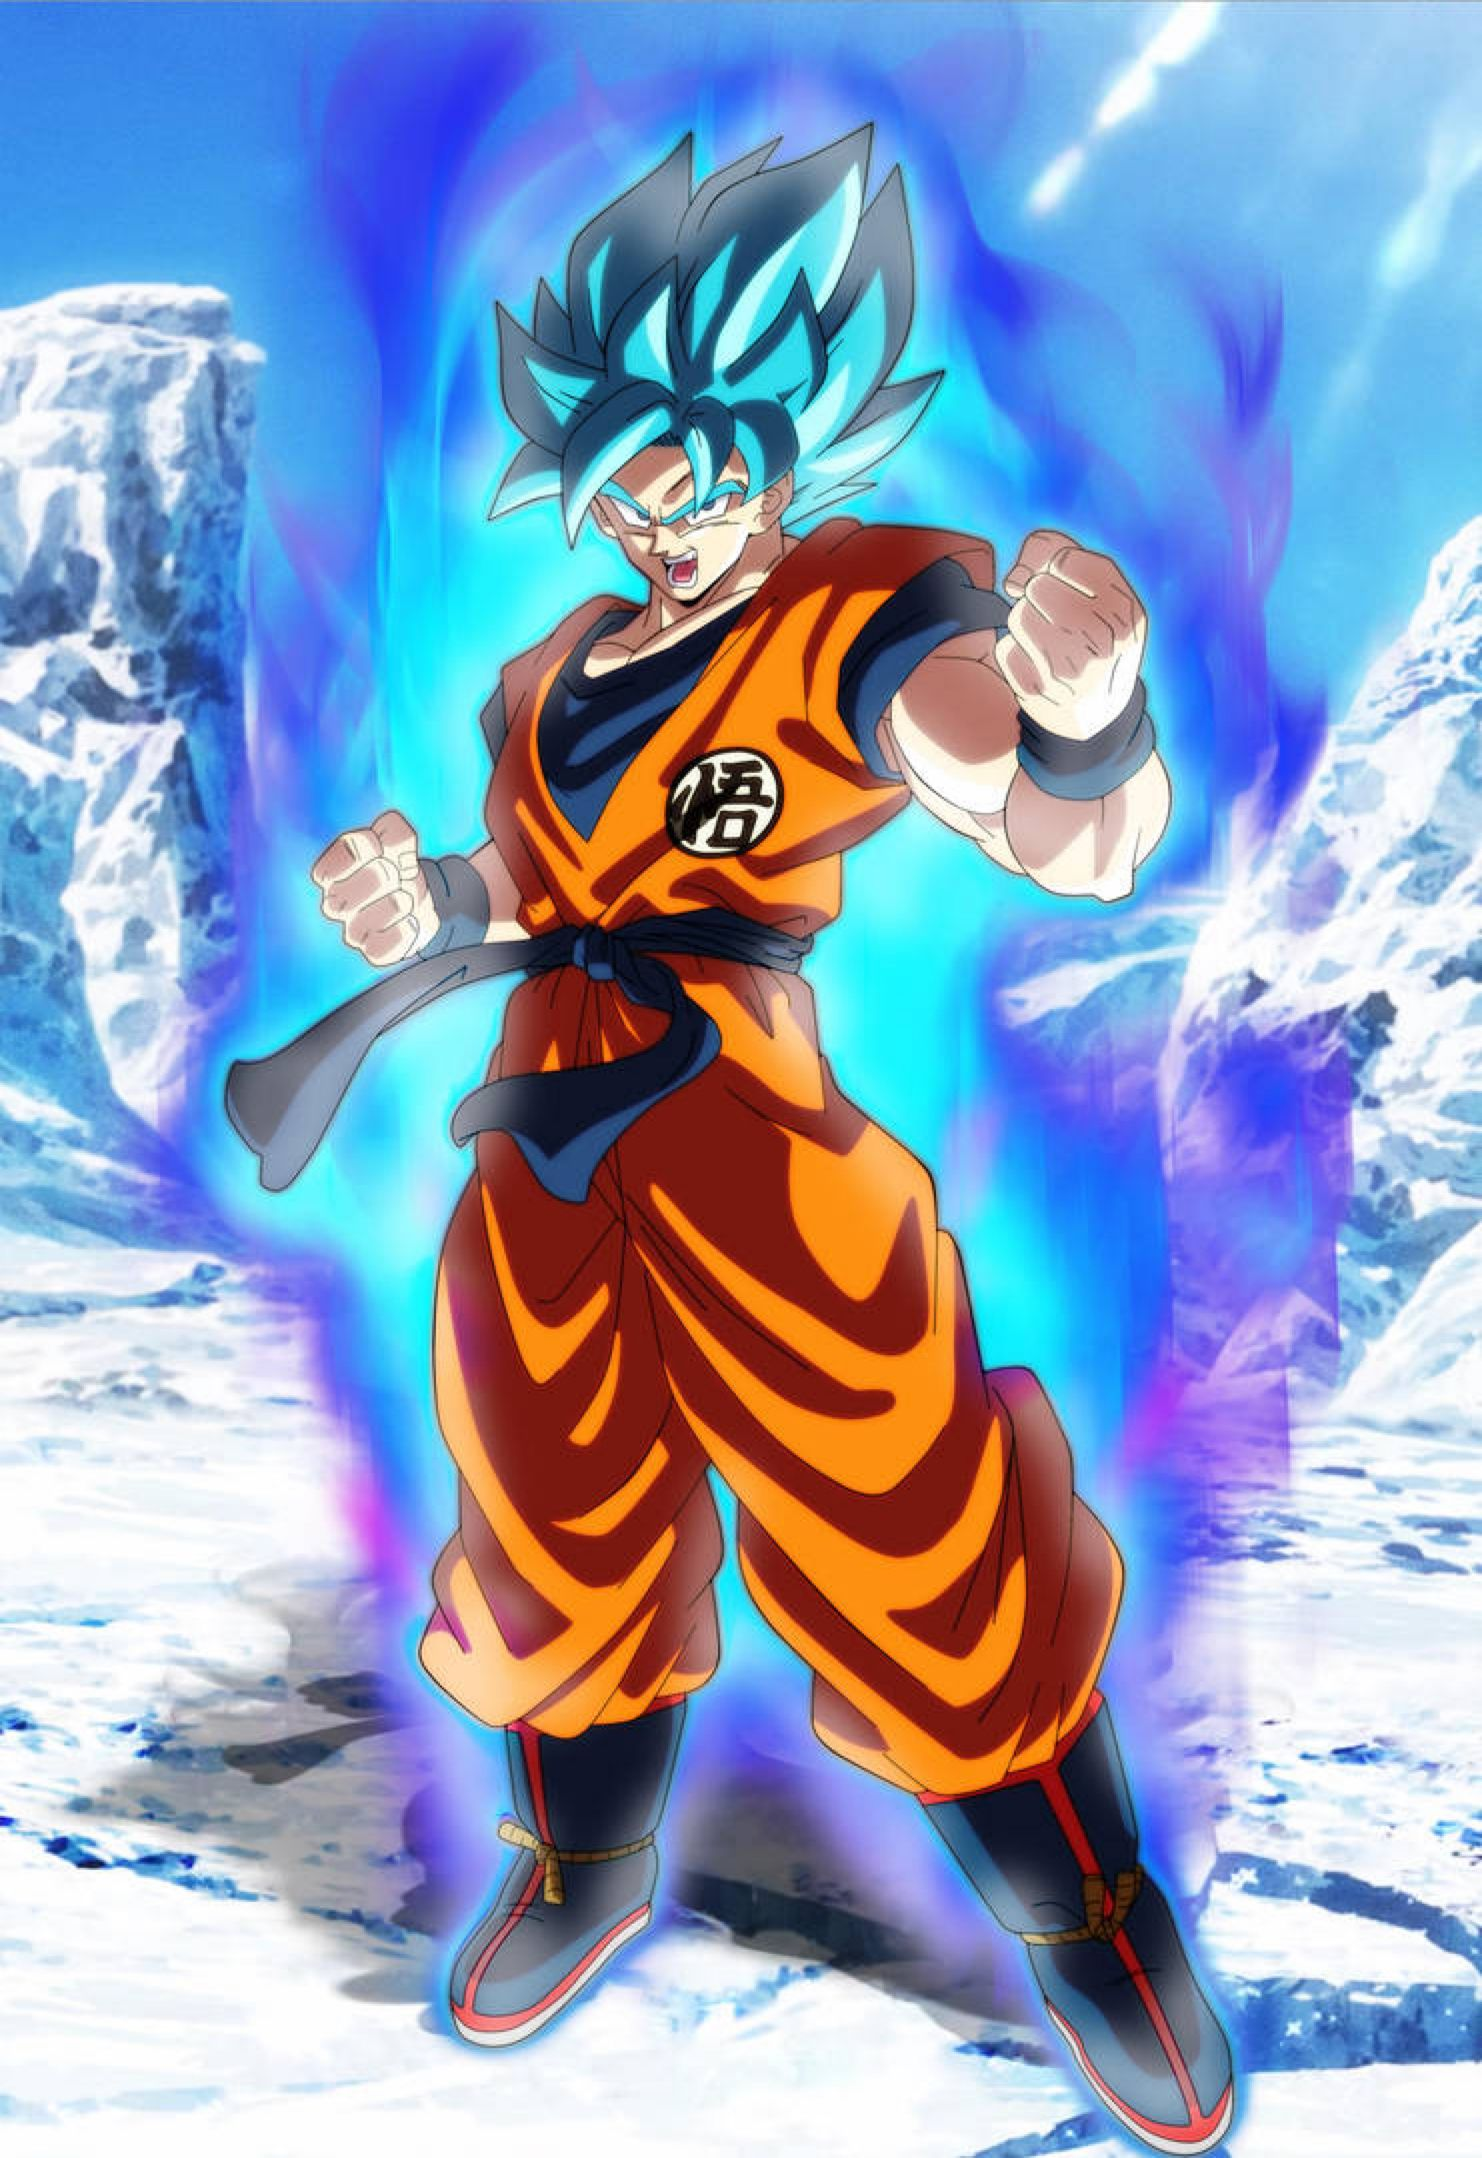 Goku Ssj Blue Dragon Ball Super Broly By Andrewdragonball On Deviantart Anime Dragon Ball Super Dragon Ball Super Manga Goku Super